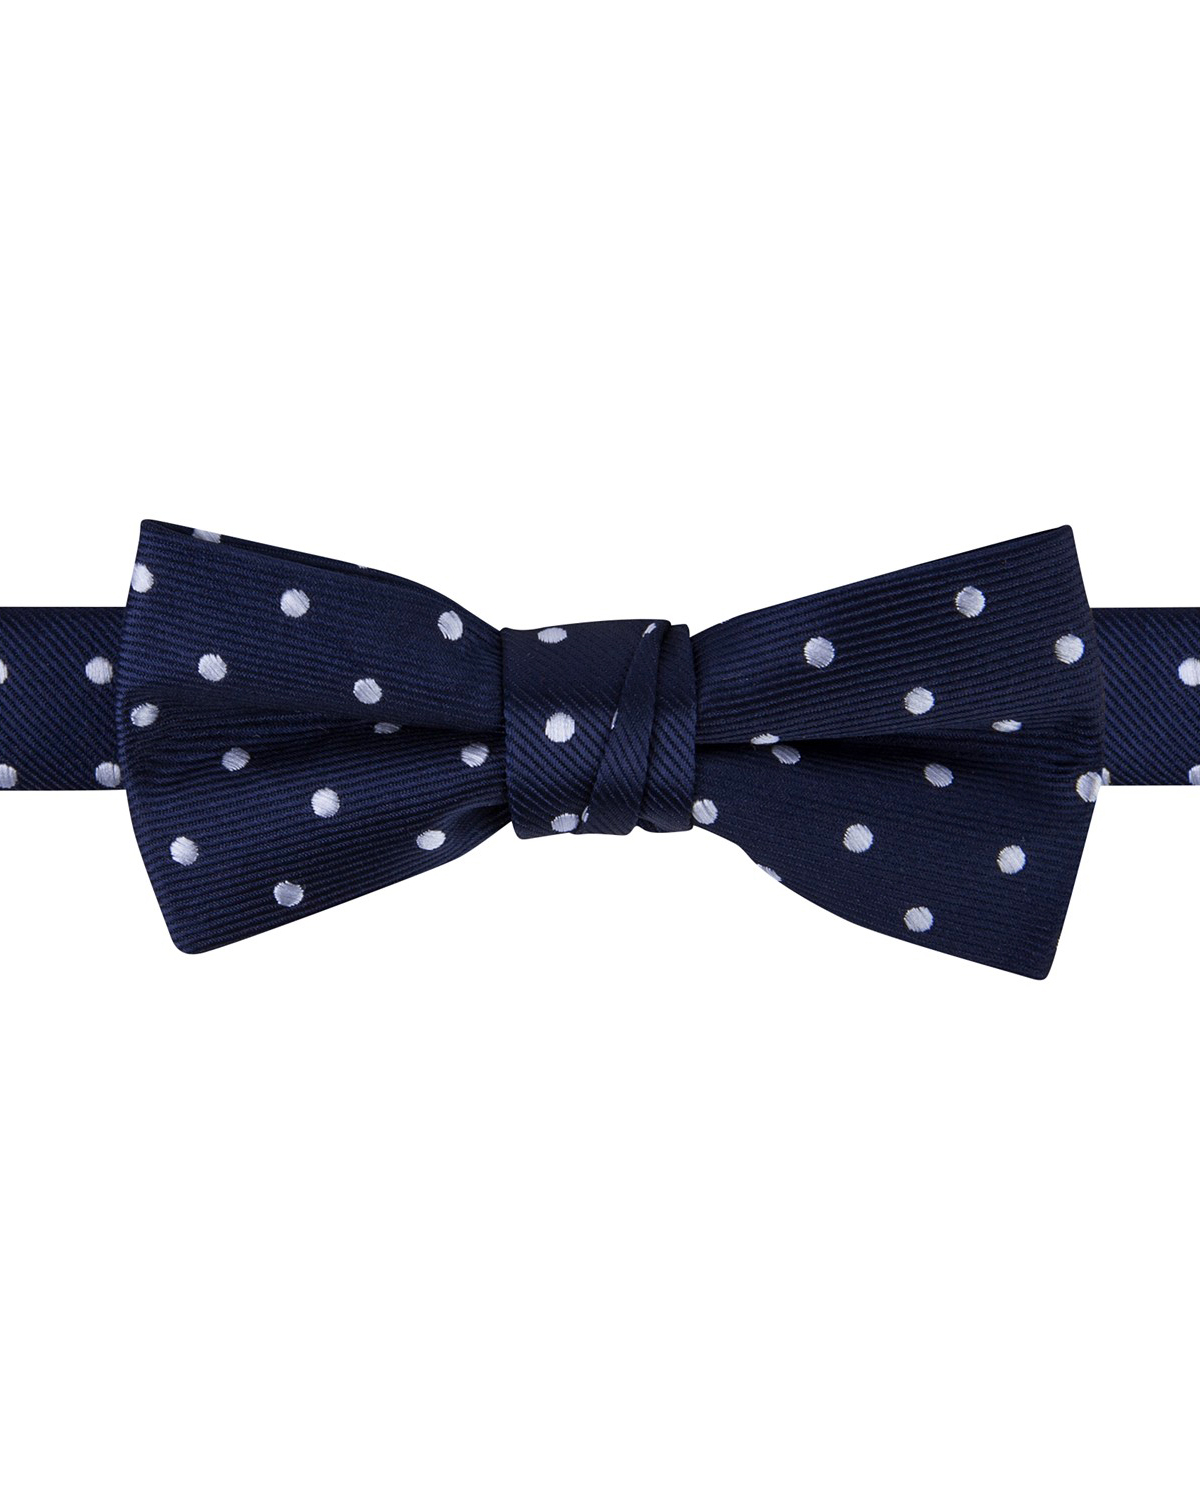 ring bearer dark blue white polk dot bow tie